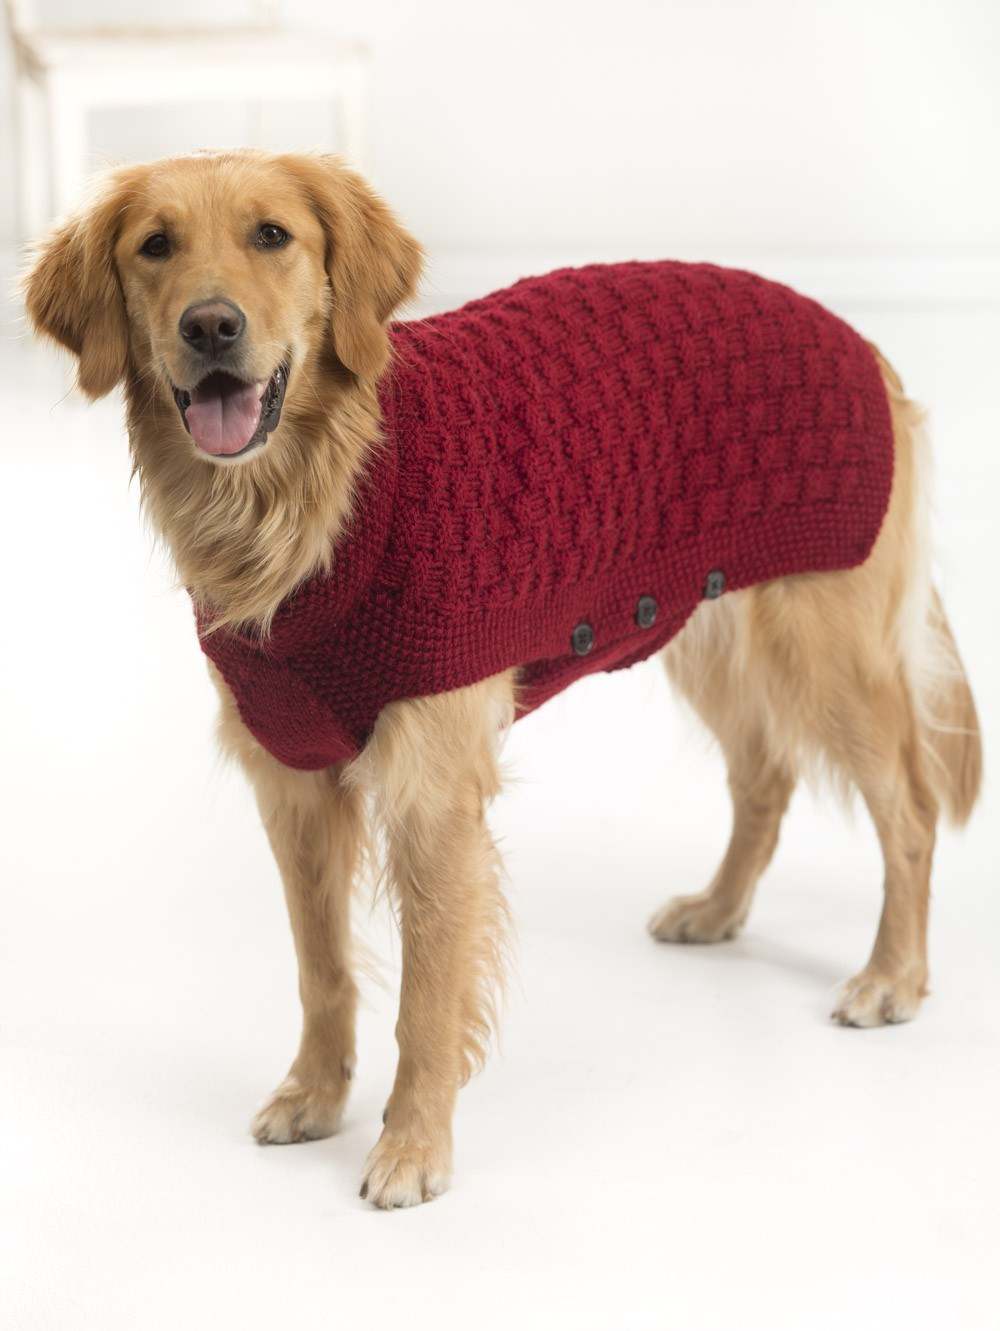 Dachshund Jumper Knitting Pattern 10 Stunning Examples Of Beautiful Fall Dog Sweaters Free Knitting